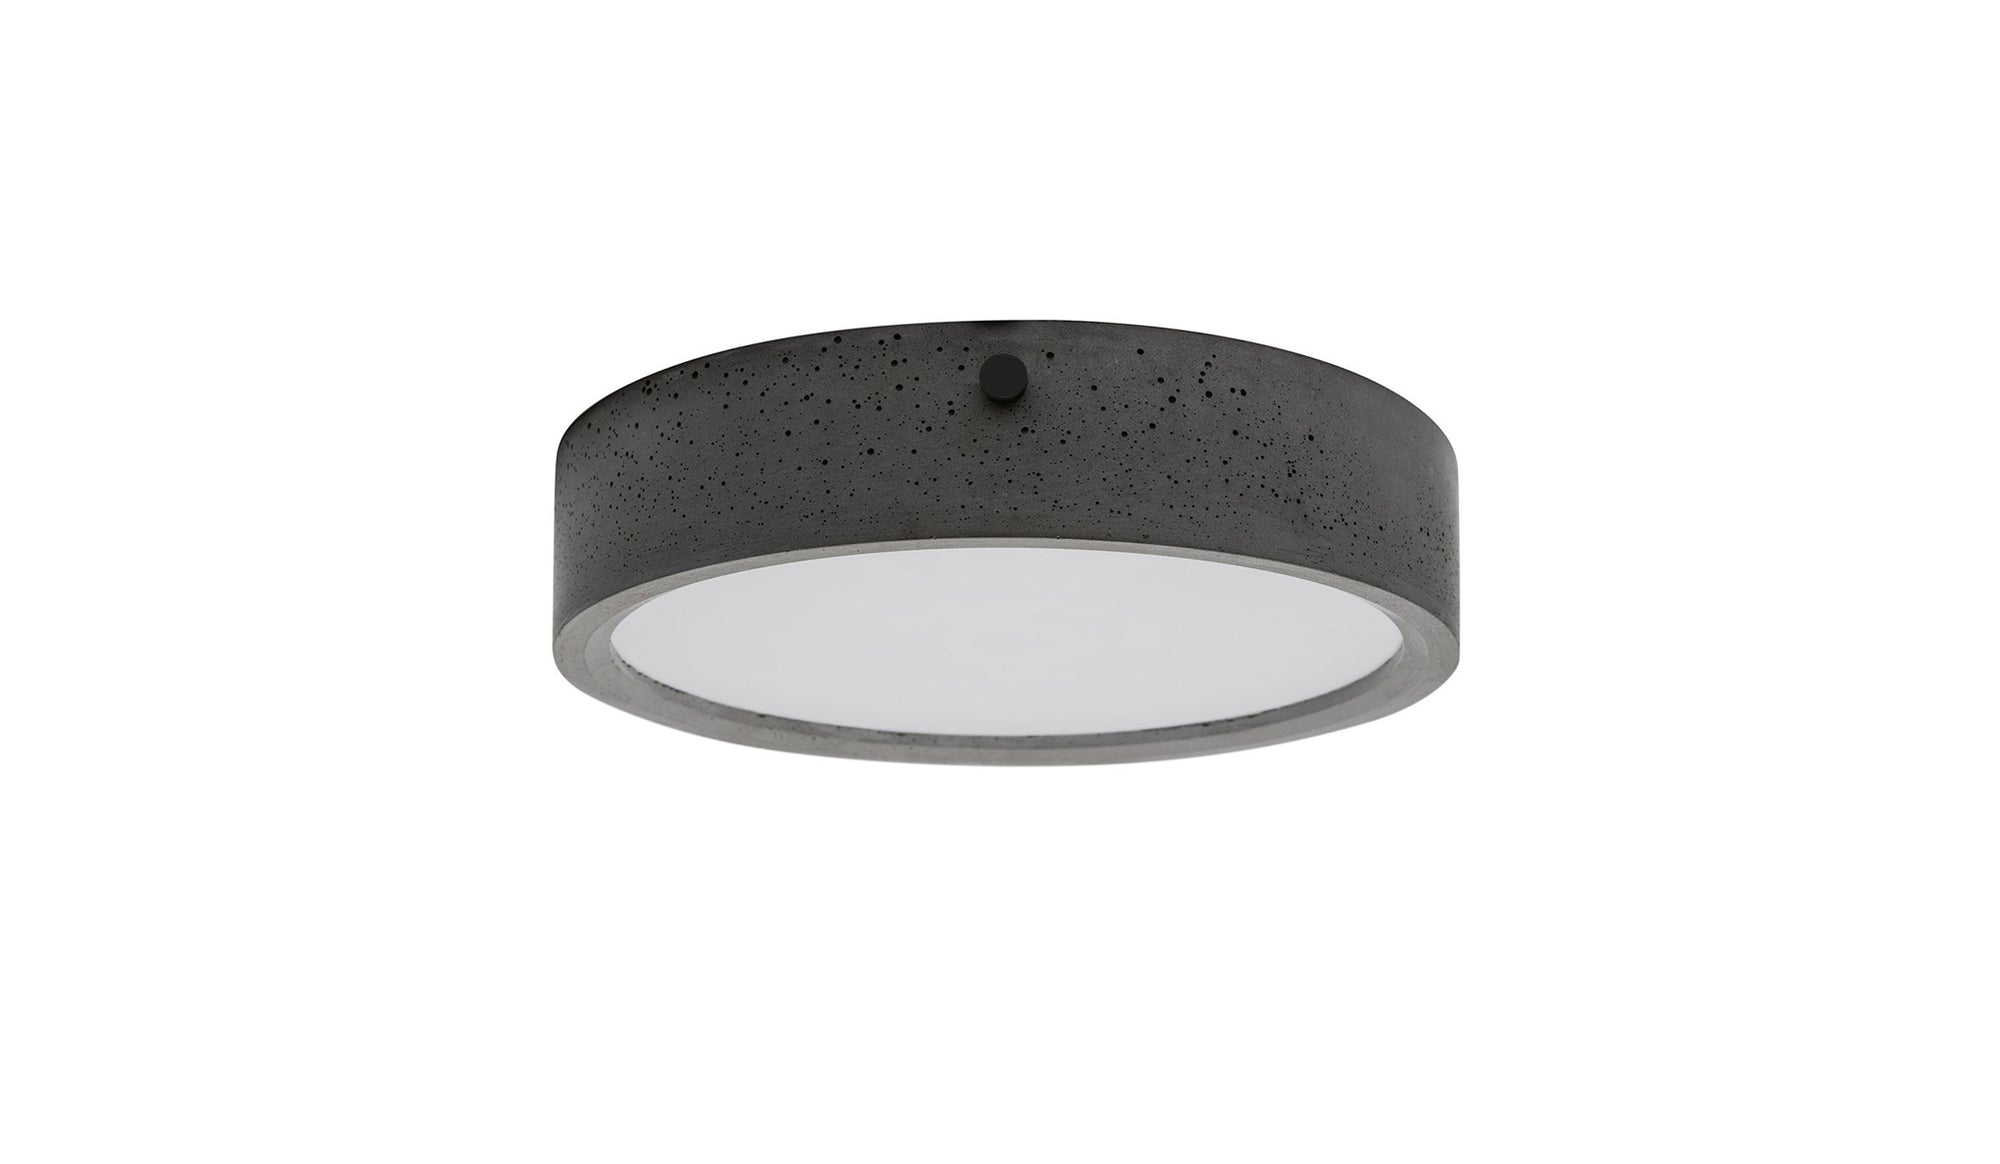 HUAN Ceiling Light